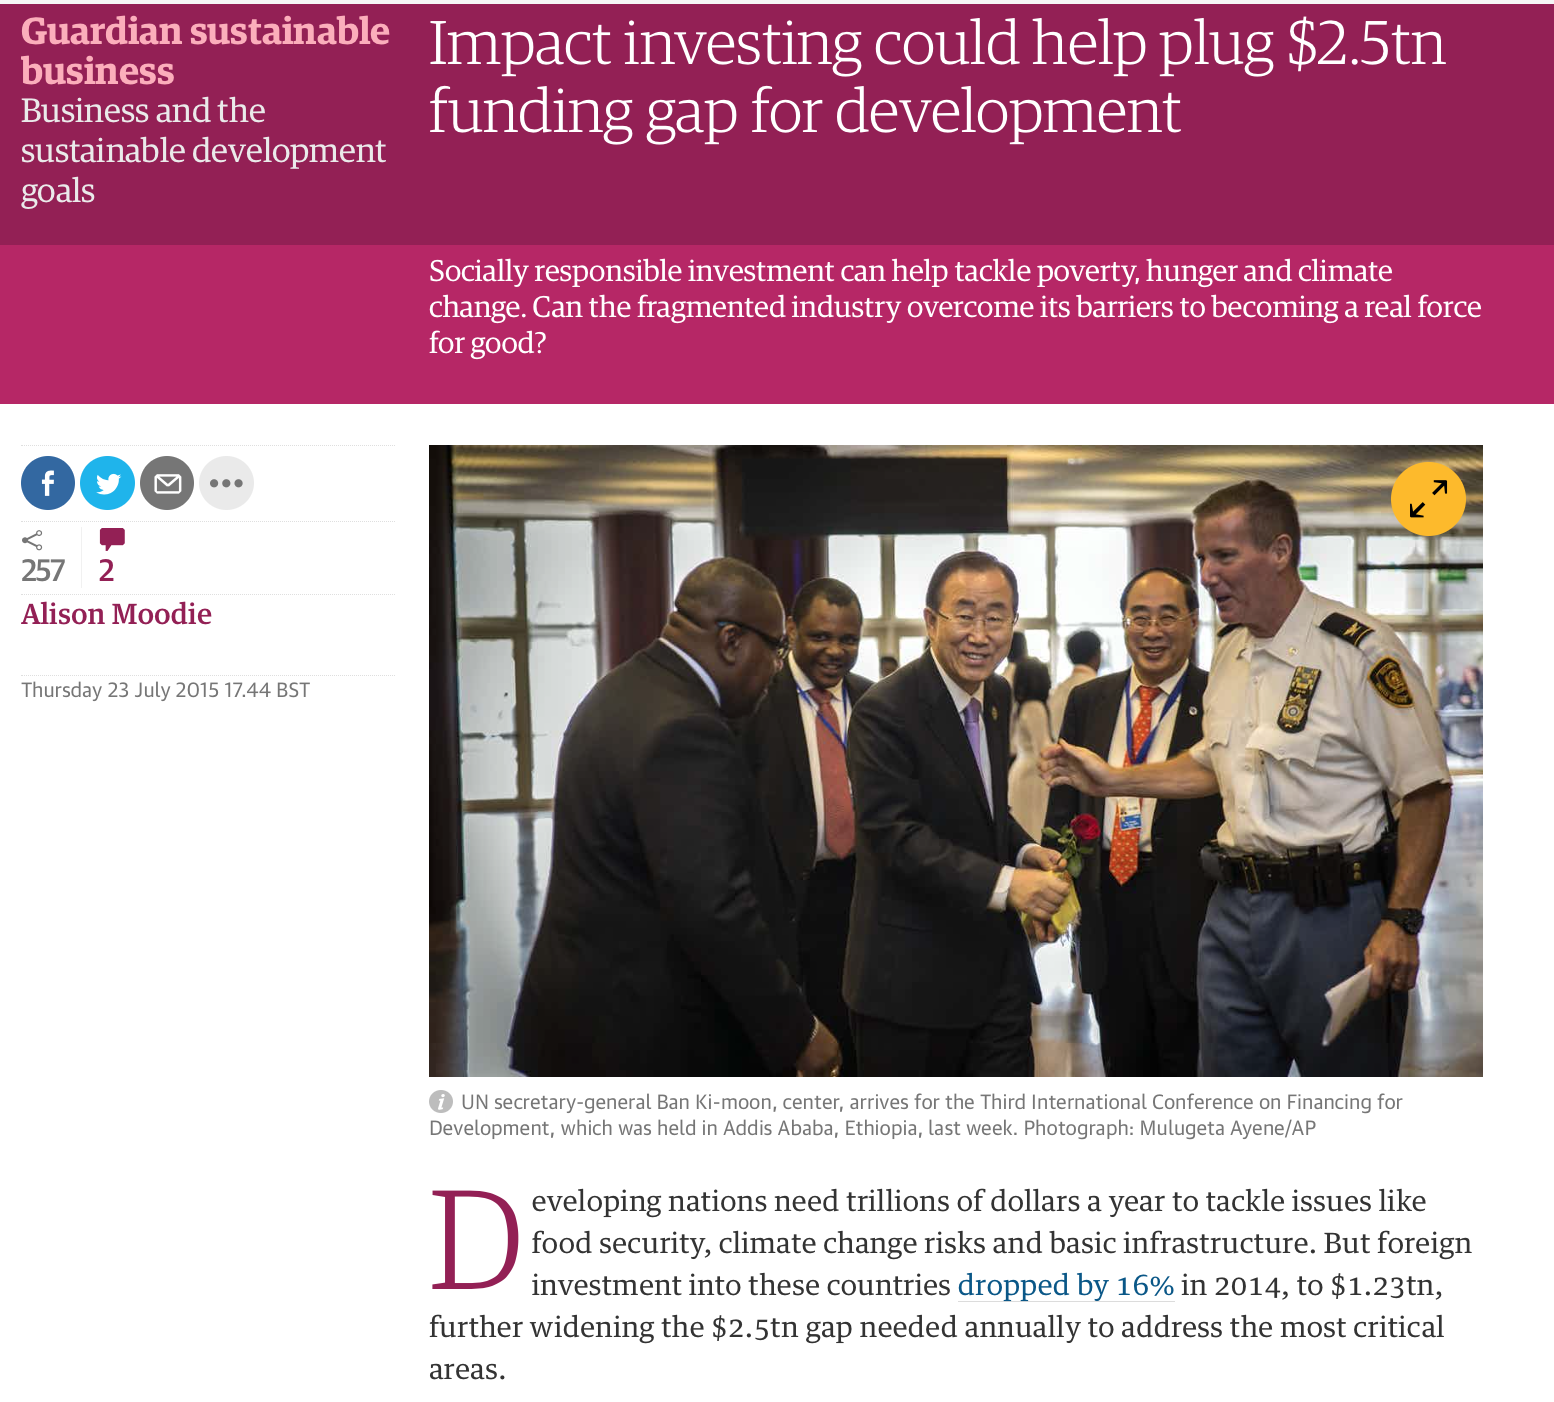 Impact Investing could help plus 2.5tn funding gap for development